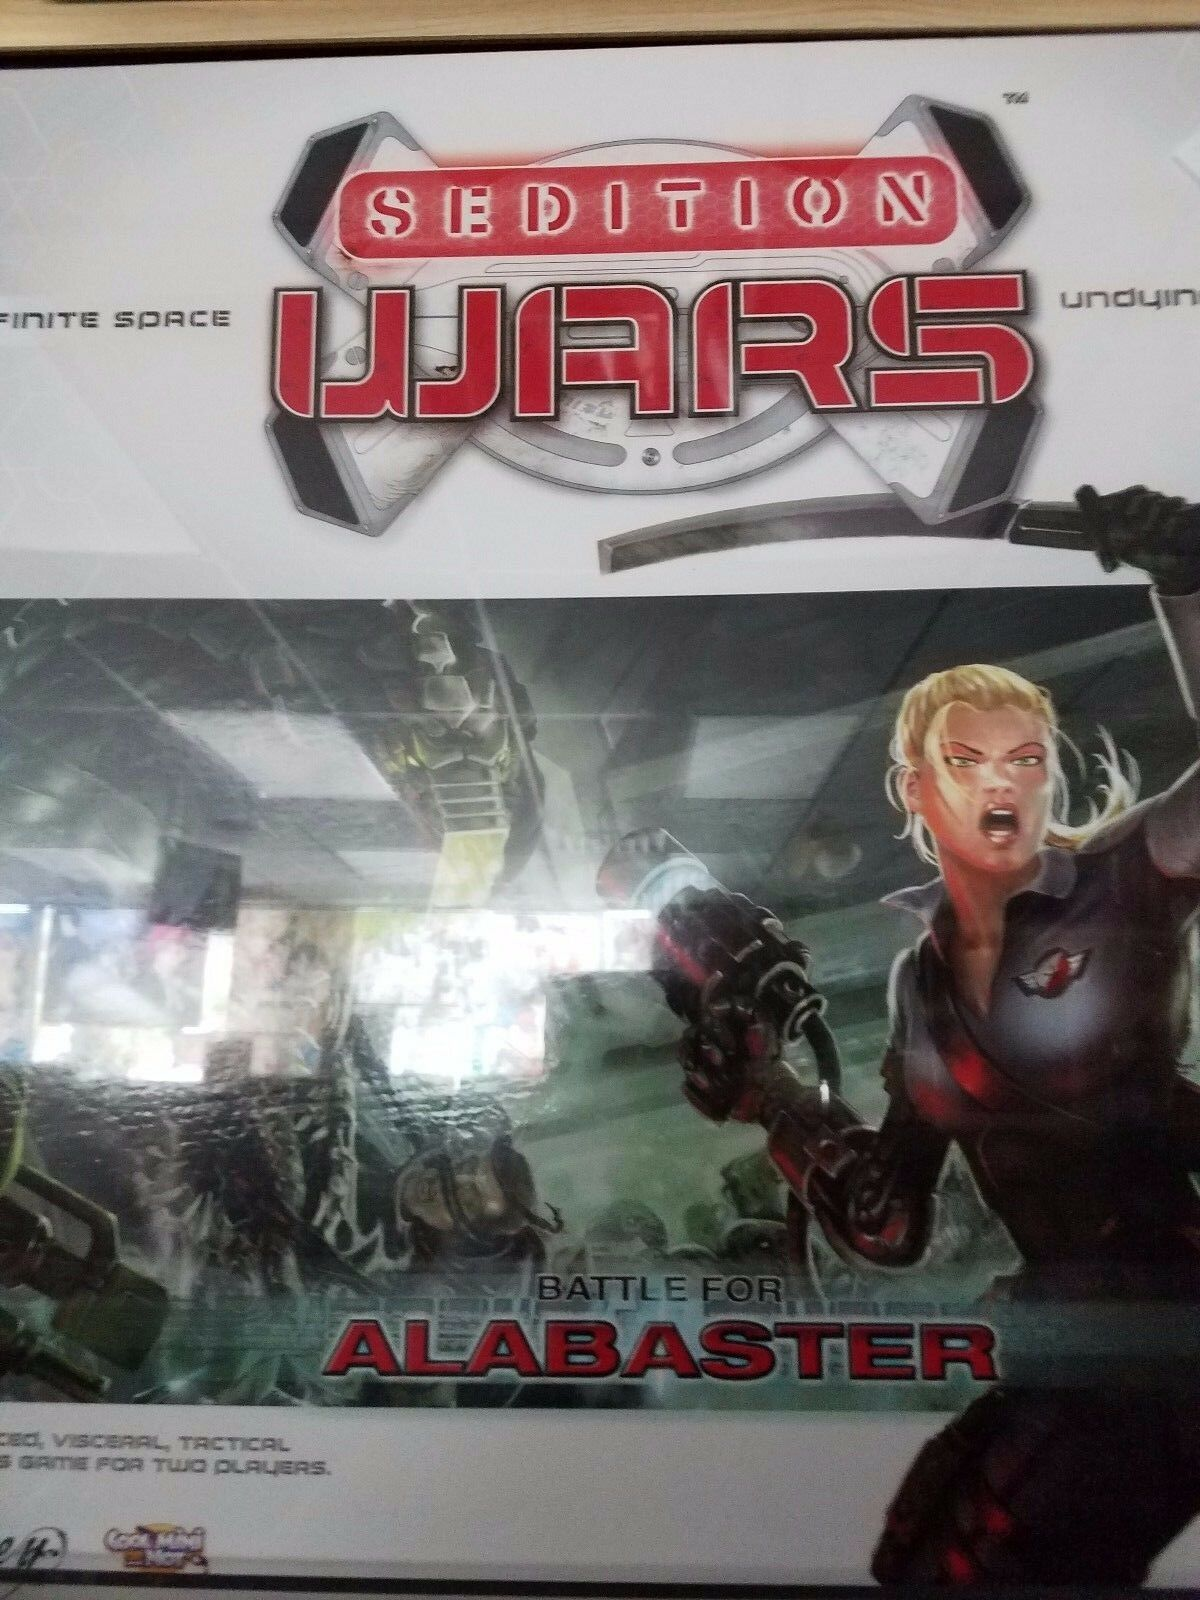 Sedition Wars: Battle for Alabaster - Board Game Cool Mini or Not Games New